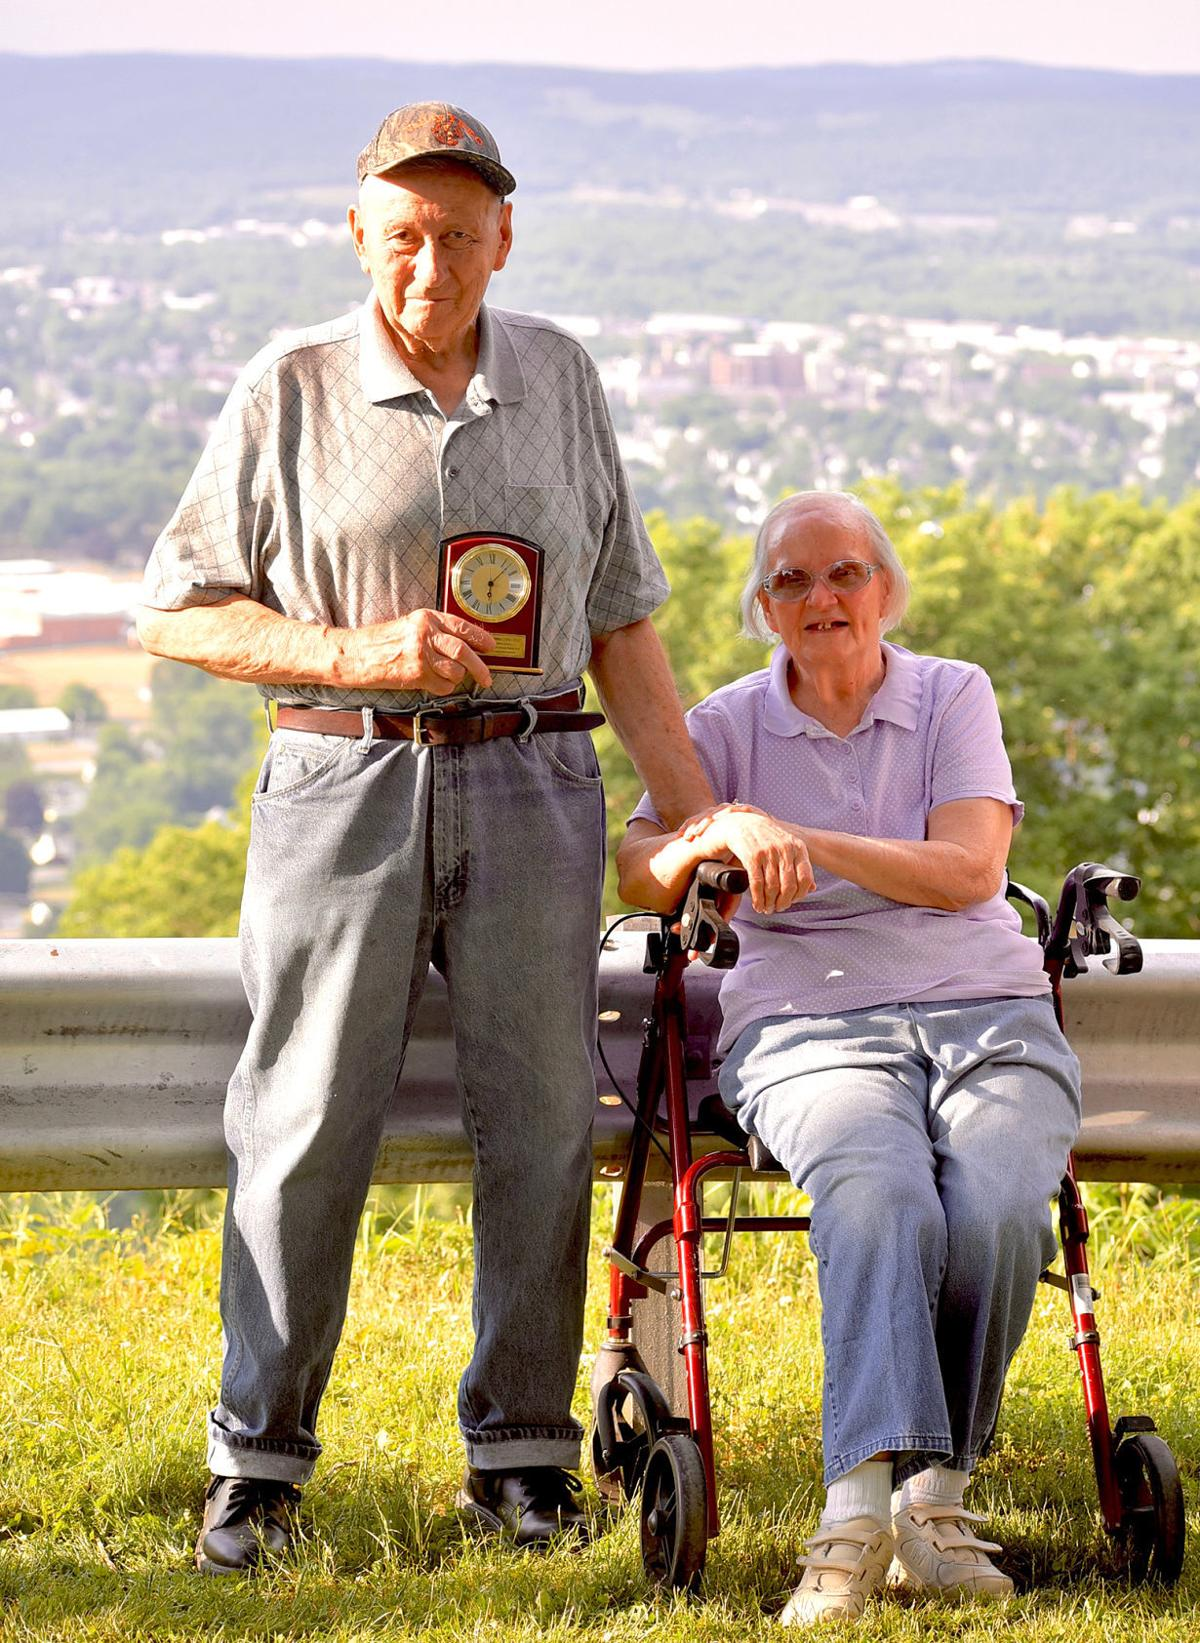 Charter member of Athens Township Parks Commission honored2